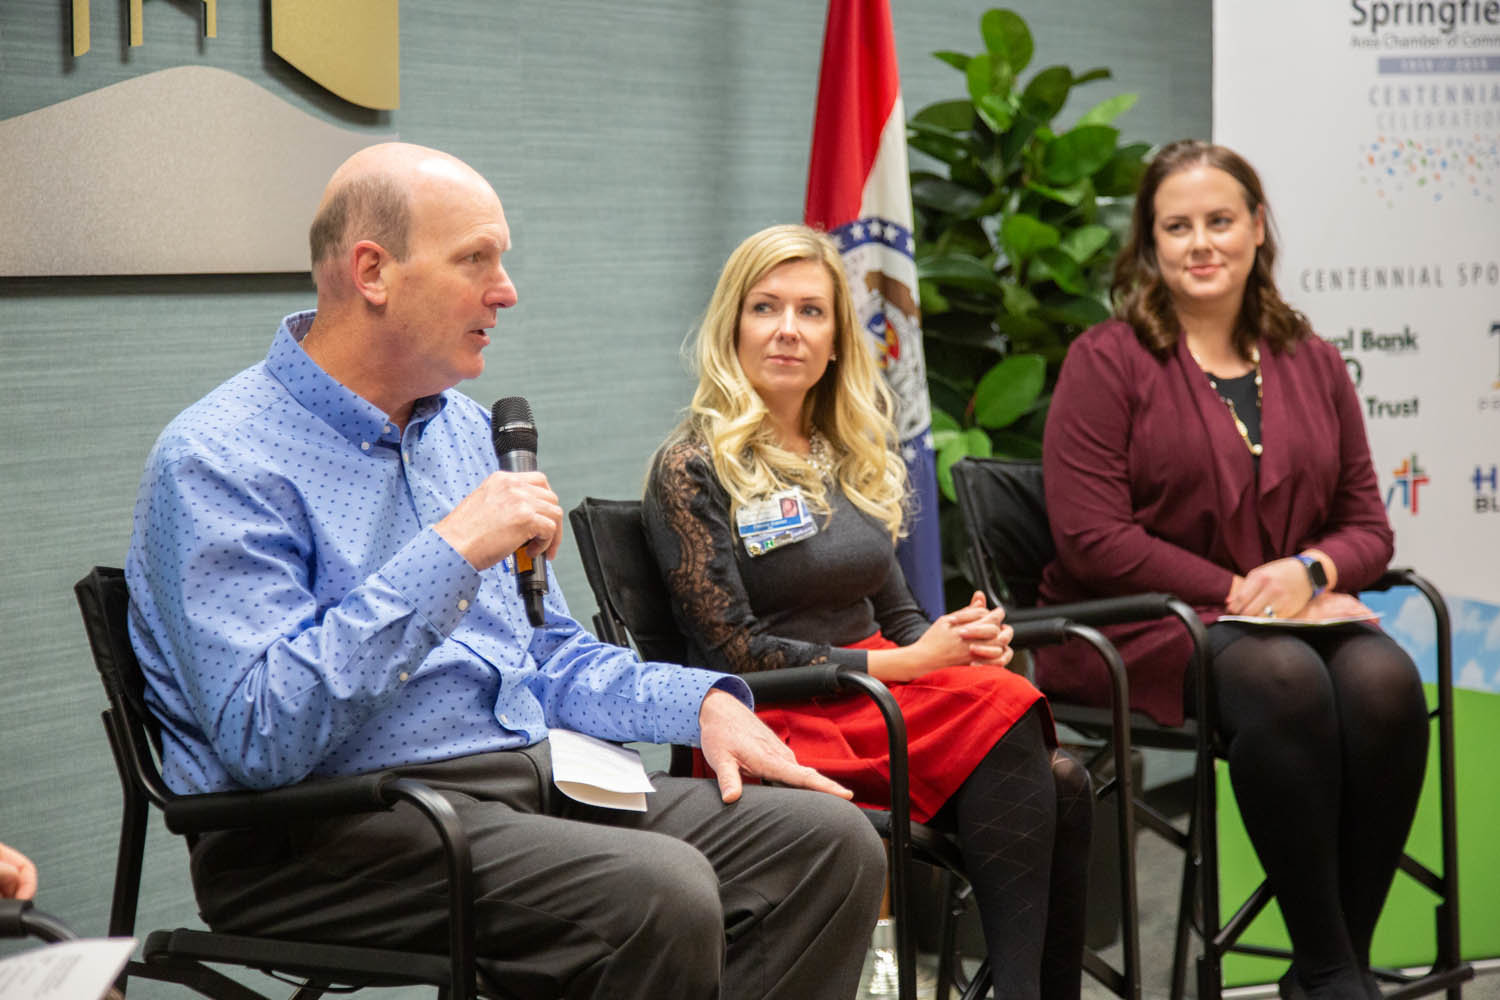 During a Springfield Area Chamber of Commerce discussion, Stephen Telscher, left, of Sapp Design Associates Architects, describes the firm's talent attraction practices. Other panelists are CoxHealth's Celeste Cramer and Kutak Rock's Ashley Norgard.